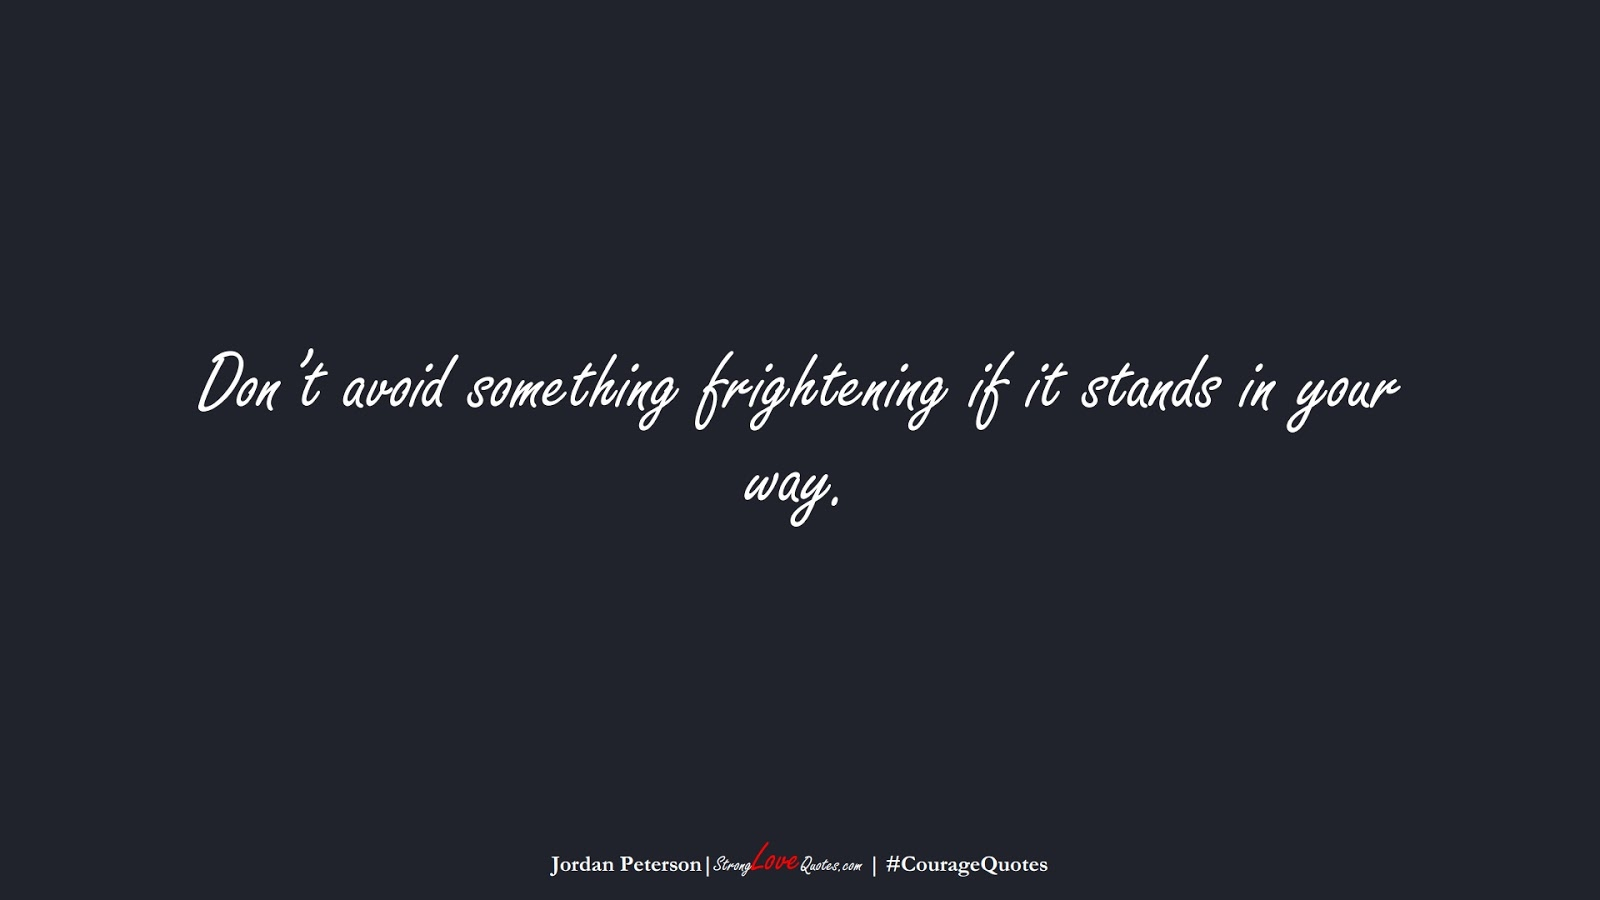 Don't avoid something frightening if it stands in your way. (Jordan Peterson);  #CourageQuotes